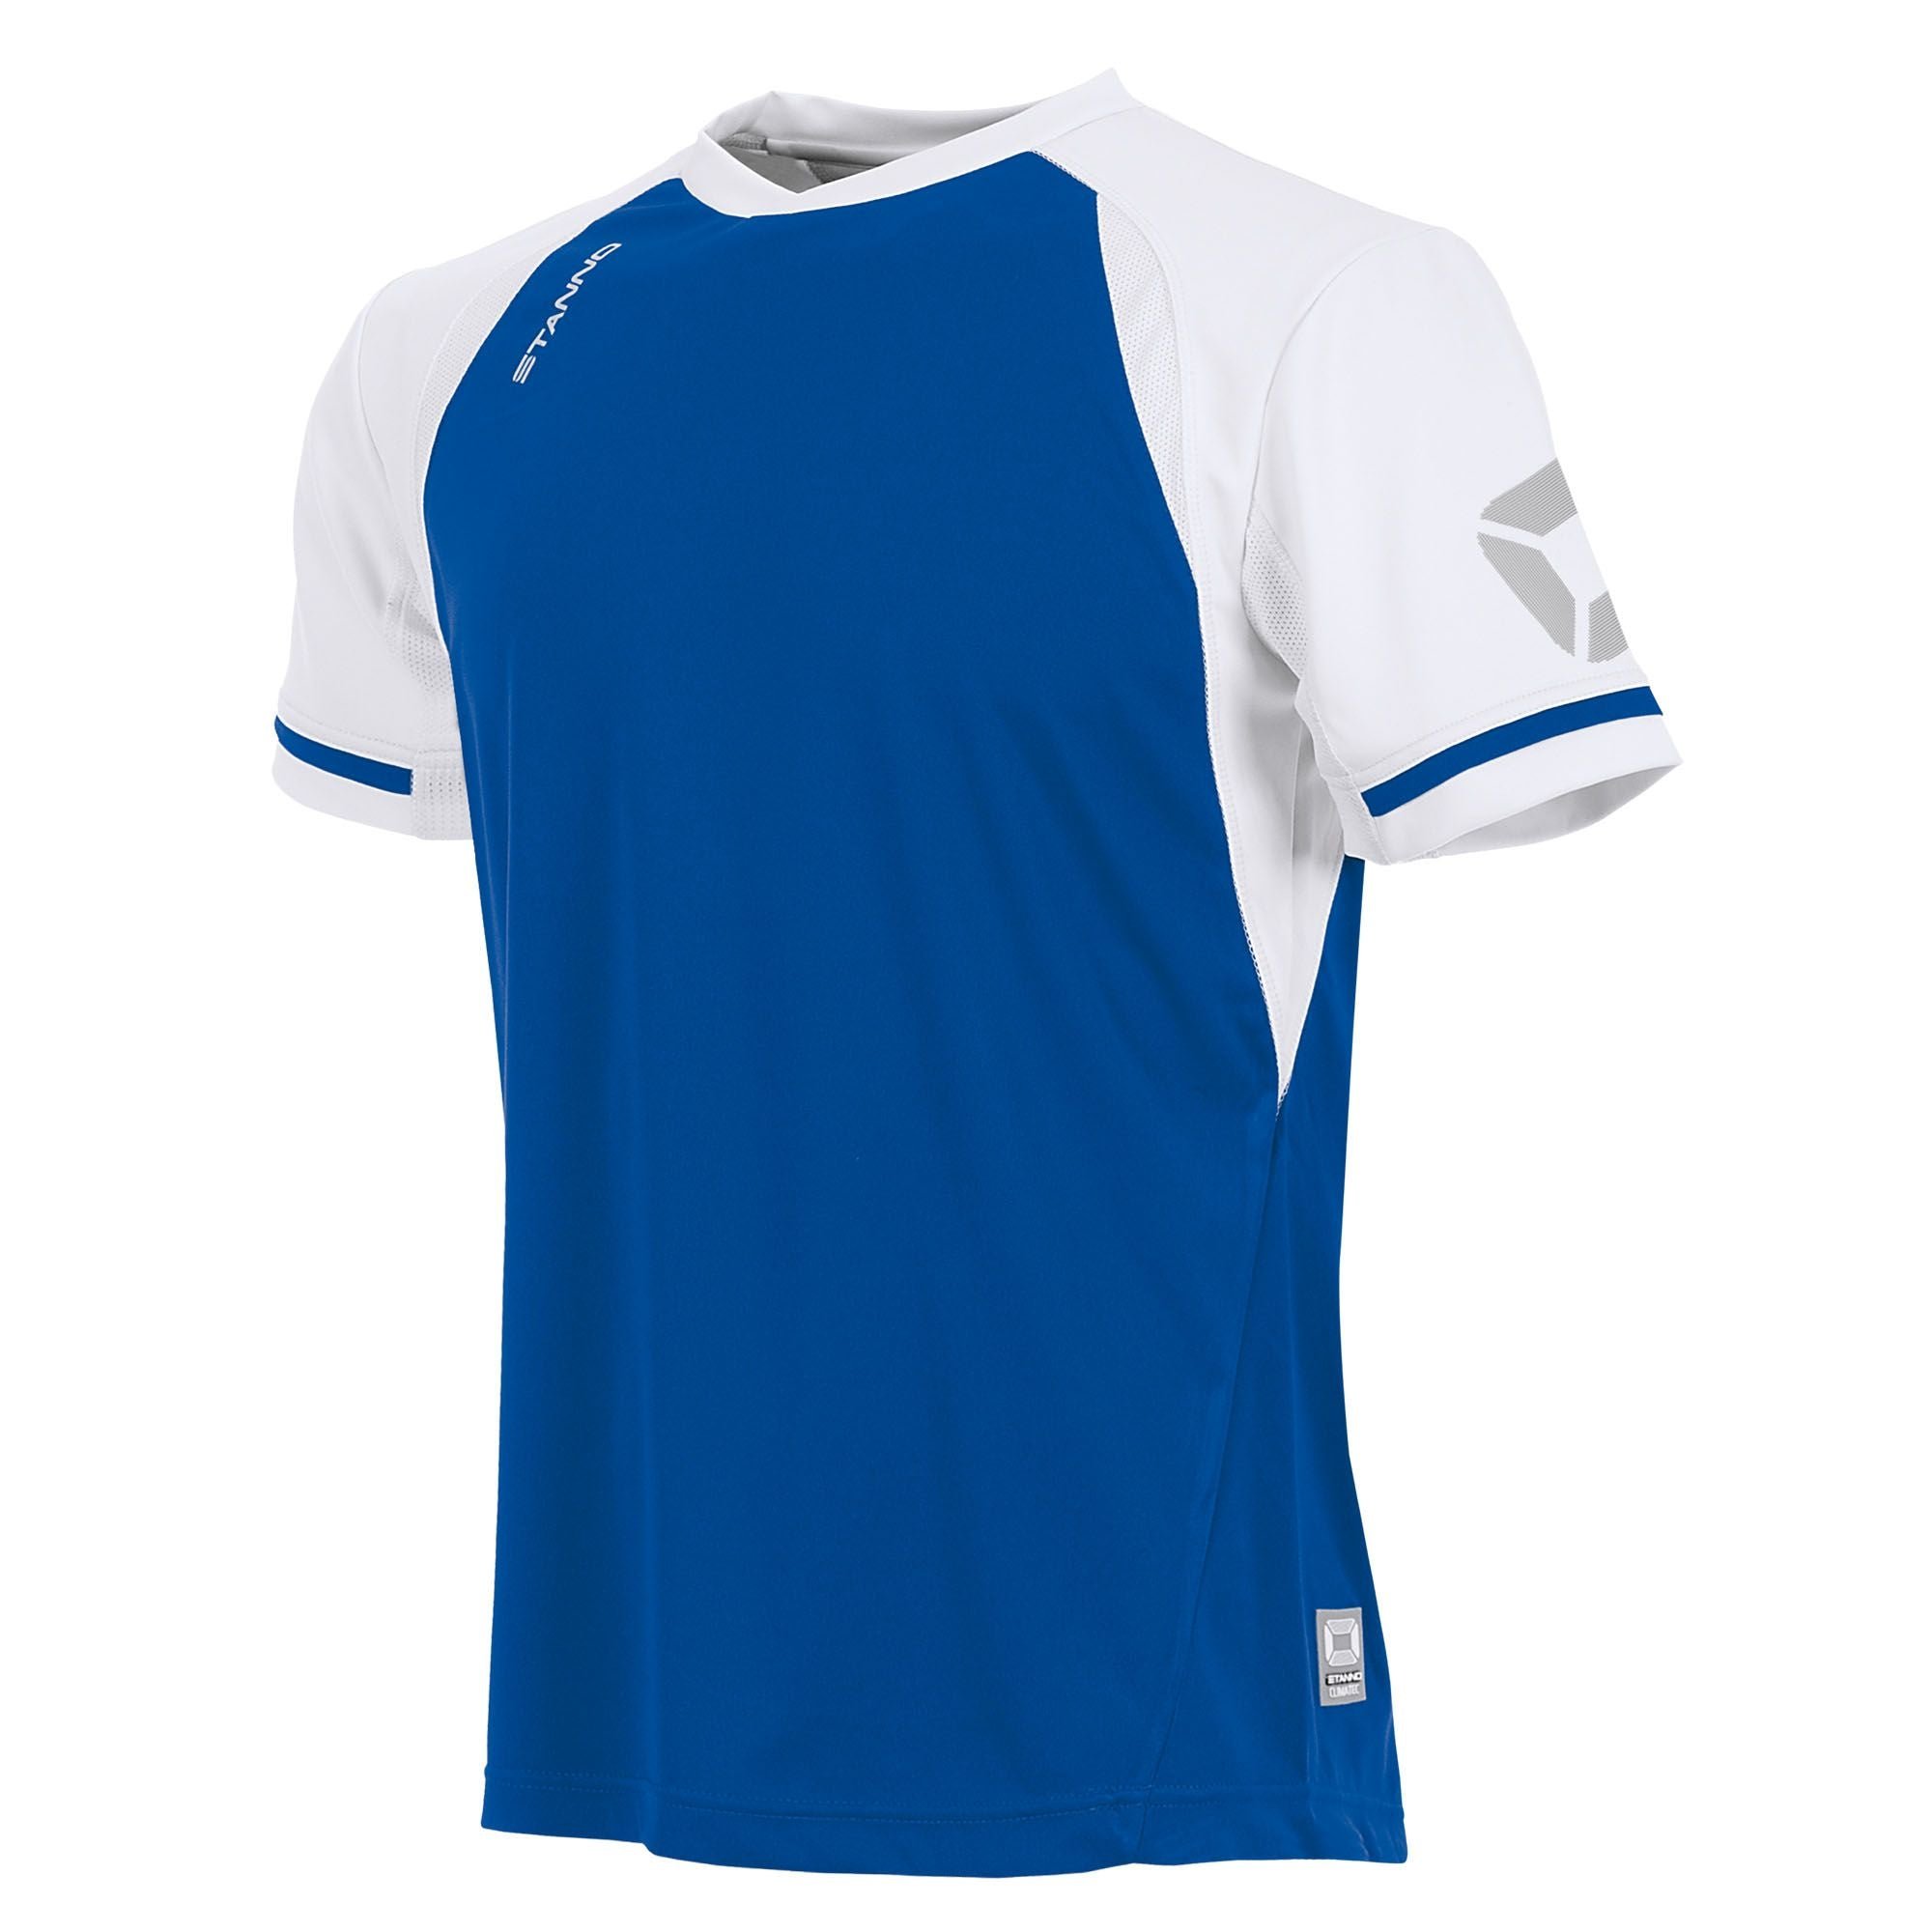 short sleeved Stanno Liga shirt in royal blue with contrast white sleeves and collar, Stadium logo on the sleeve.